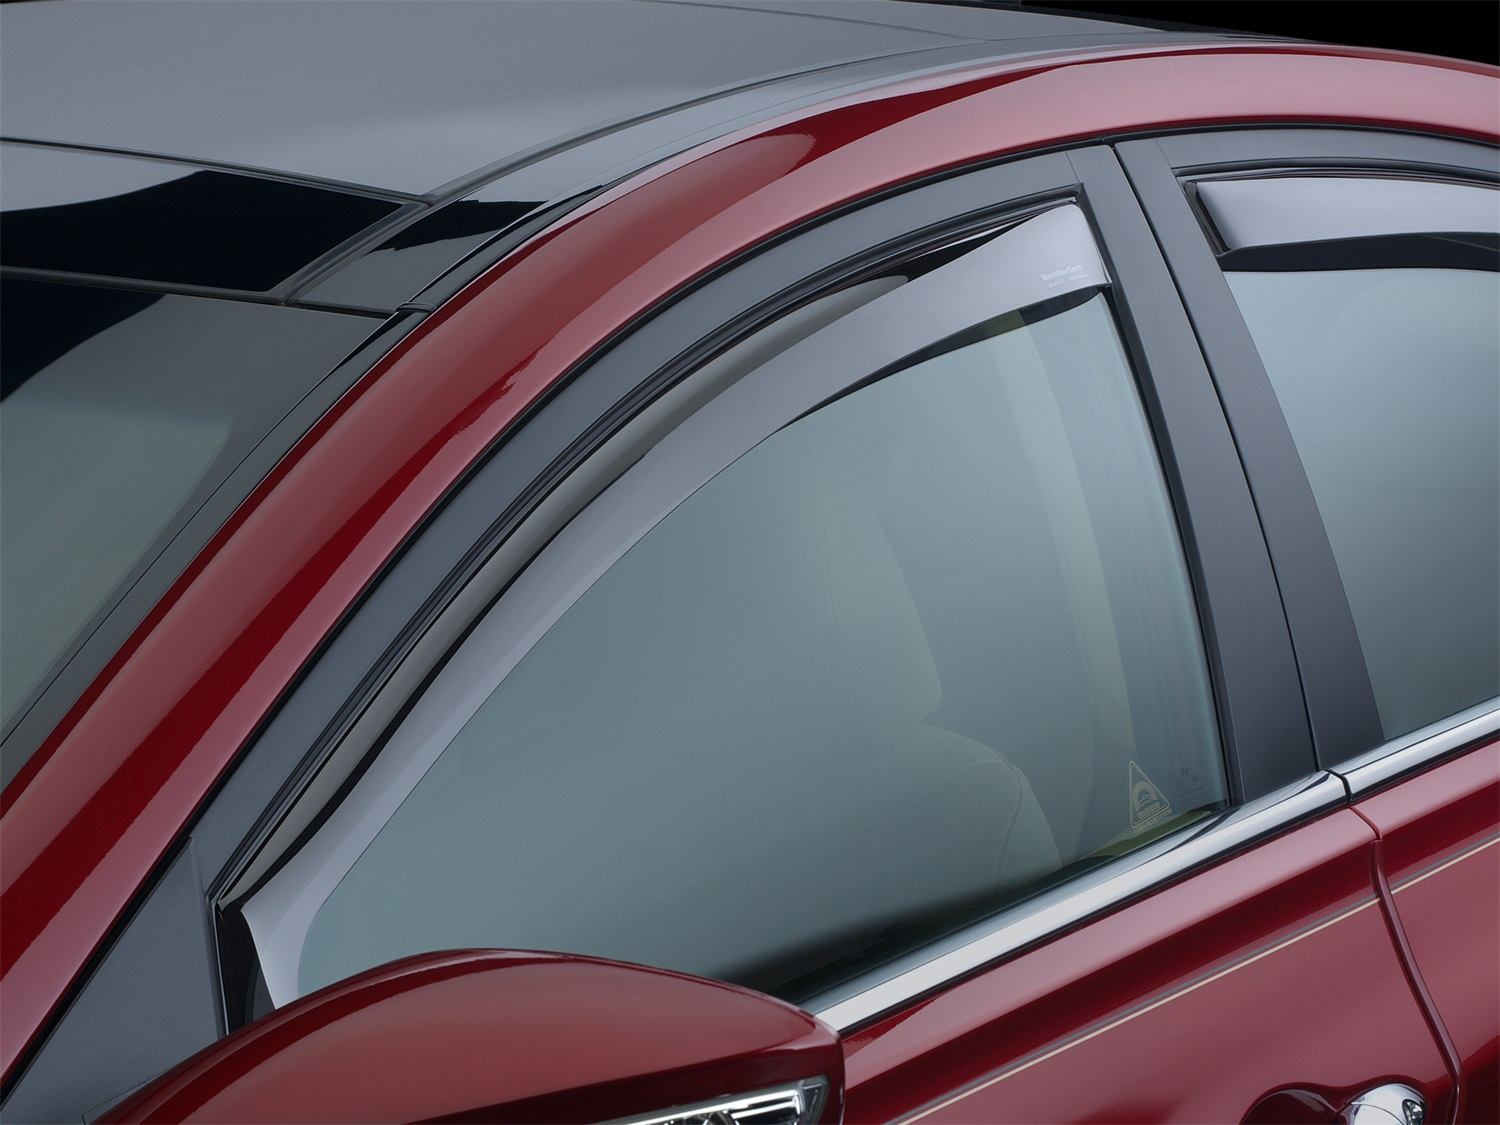 Nissan Sentra 2012 Accessories >> WeatherTech In-Channel Side Window Deflectors - In Stock